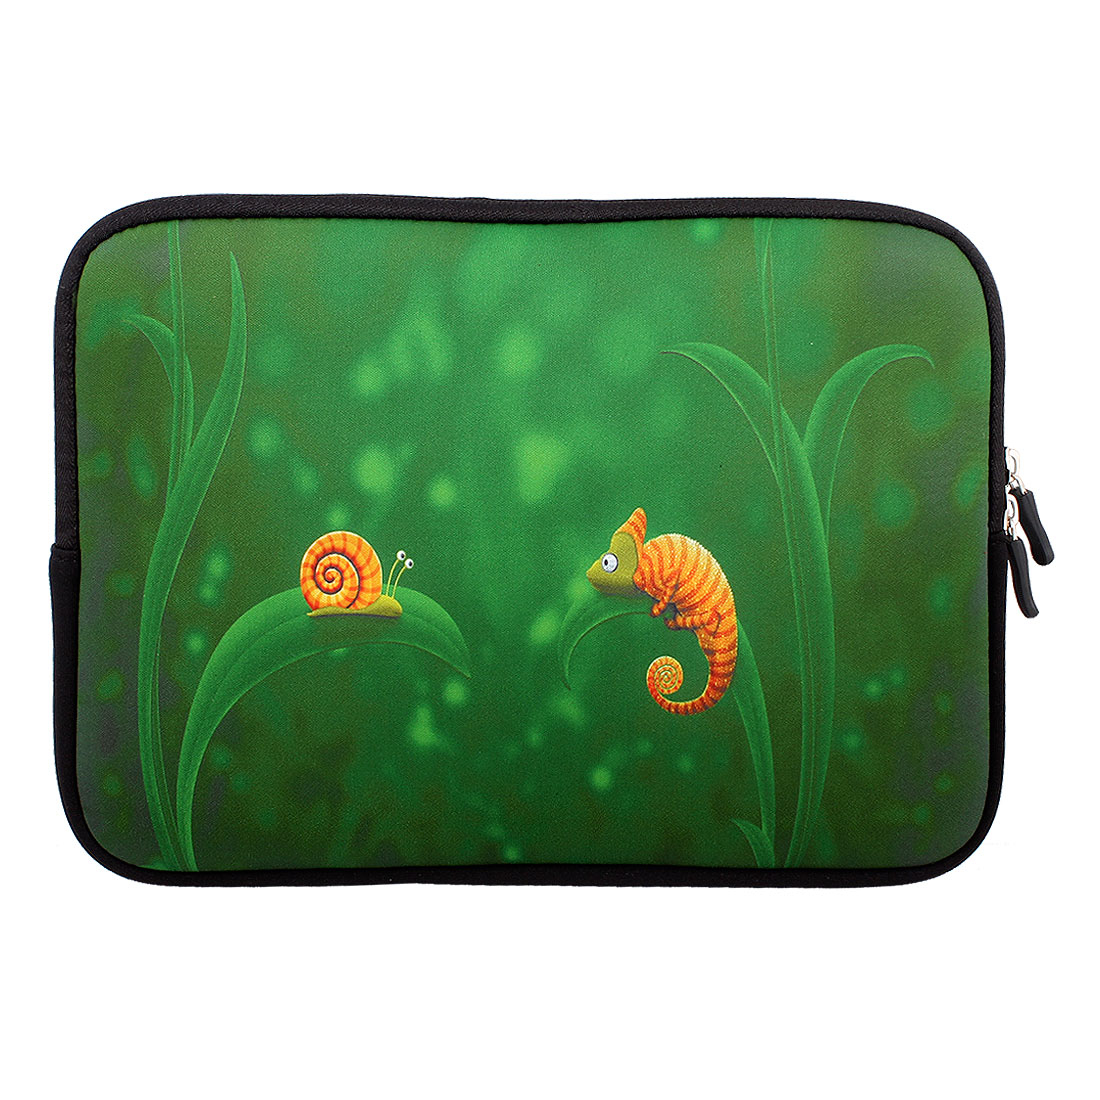 "Snail Print 10"" 10.1"" 10.2"" Neoprene Notebook Laptop Sleeve Bag Case"